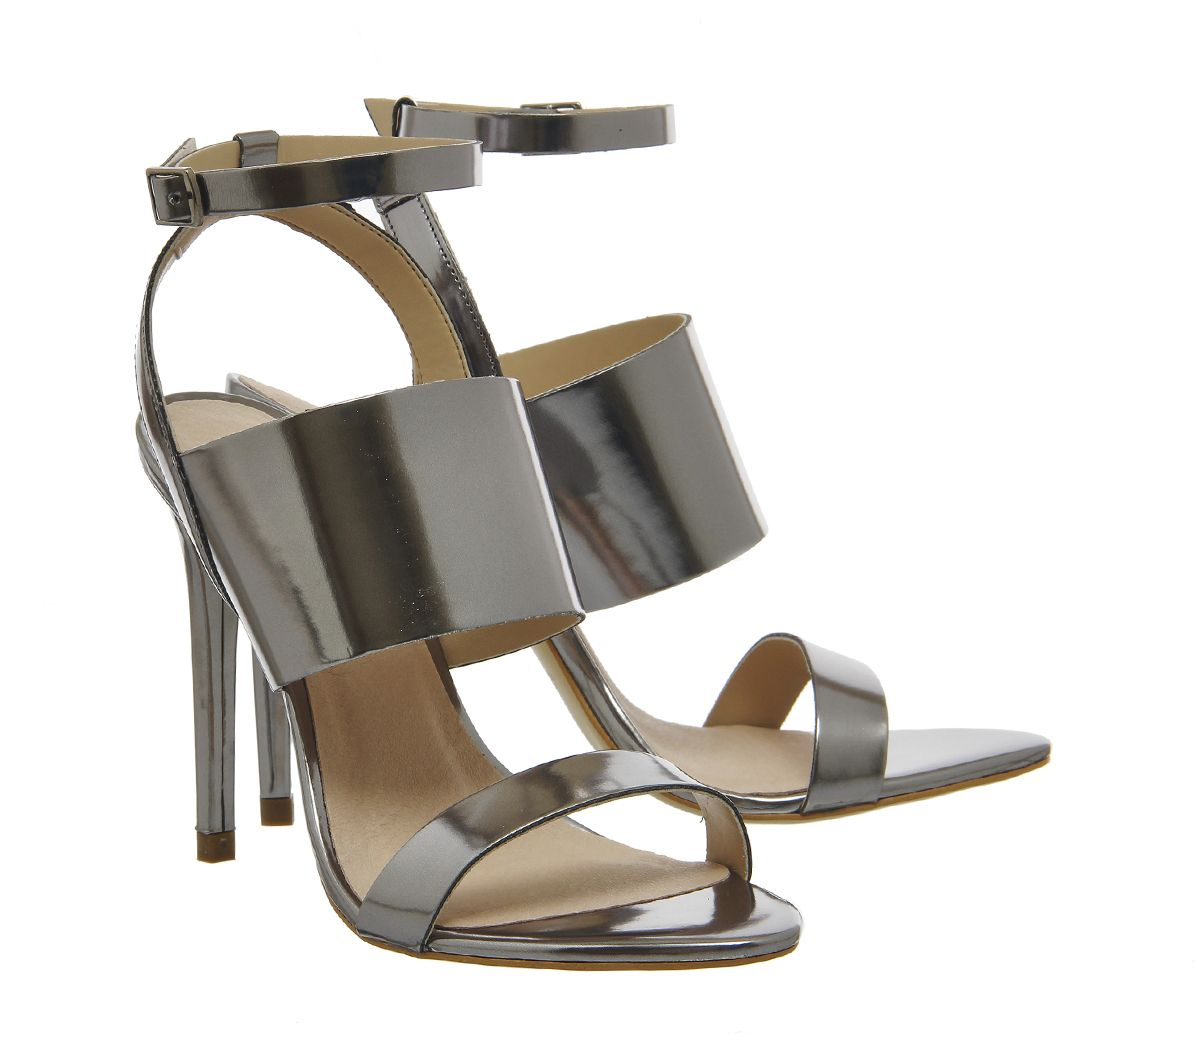 91f6cc1e9e33 Buy Pewter Metallic Office Anchor 3 Strap Heels from OFFICE.co.uk ...